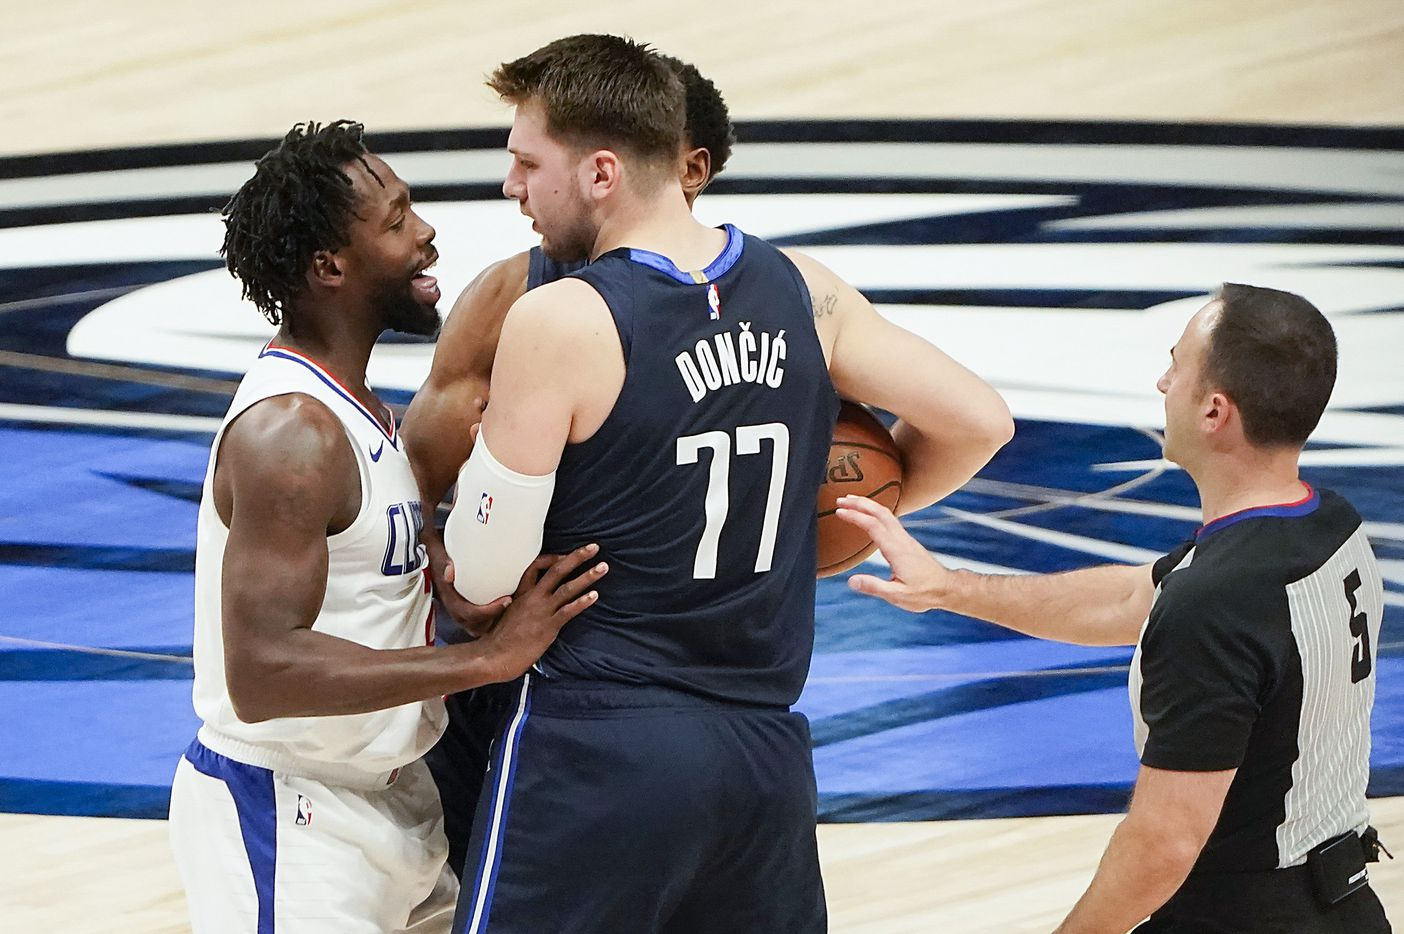 Officials and teammates rush in to separate Dallas Mavericks guard Luka Doncic (77) from LA Clippers guard Patrick Beverley (21) during the first quarter of an NBA playoff basketball game at American Airlines Center on Friday, May 28, 2021, in Dallas.